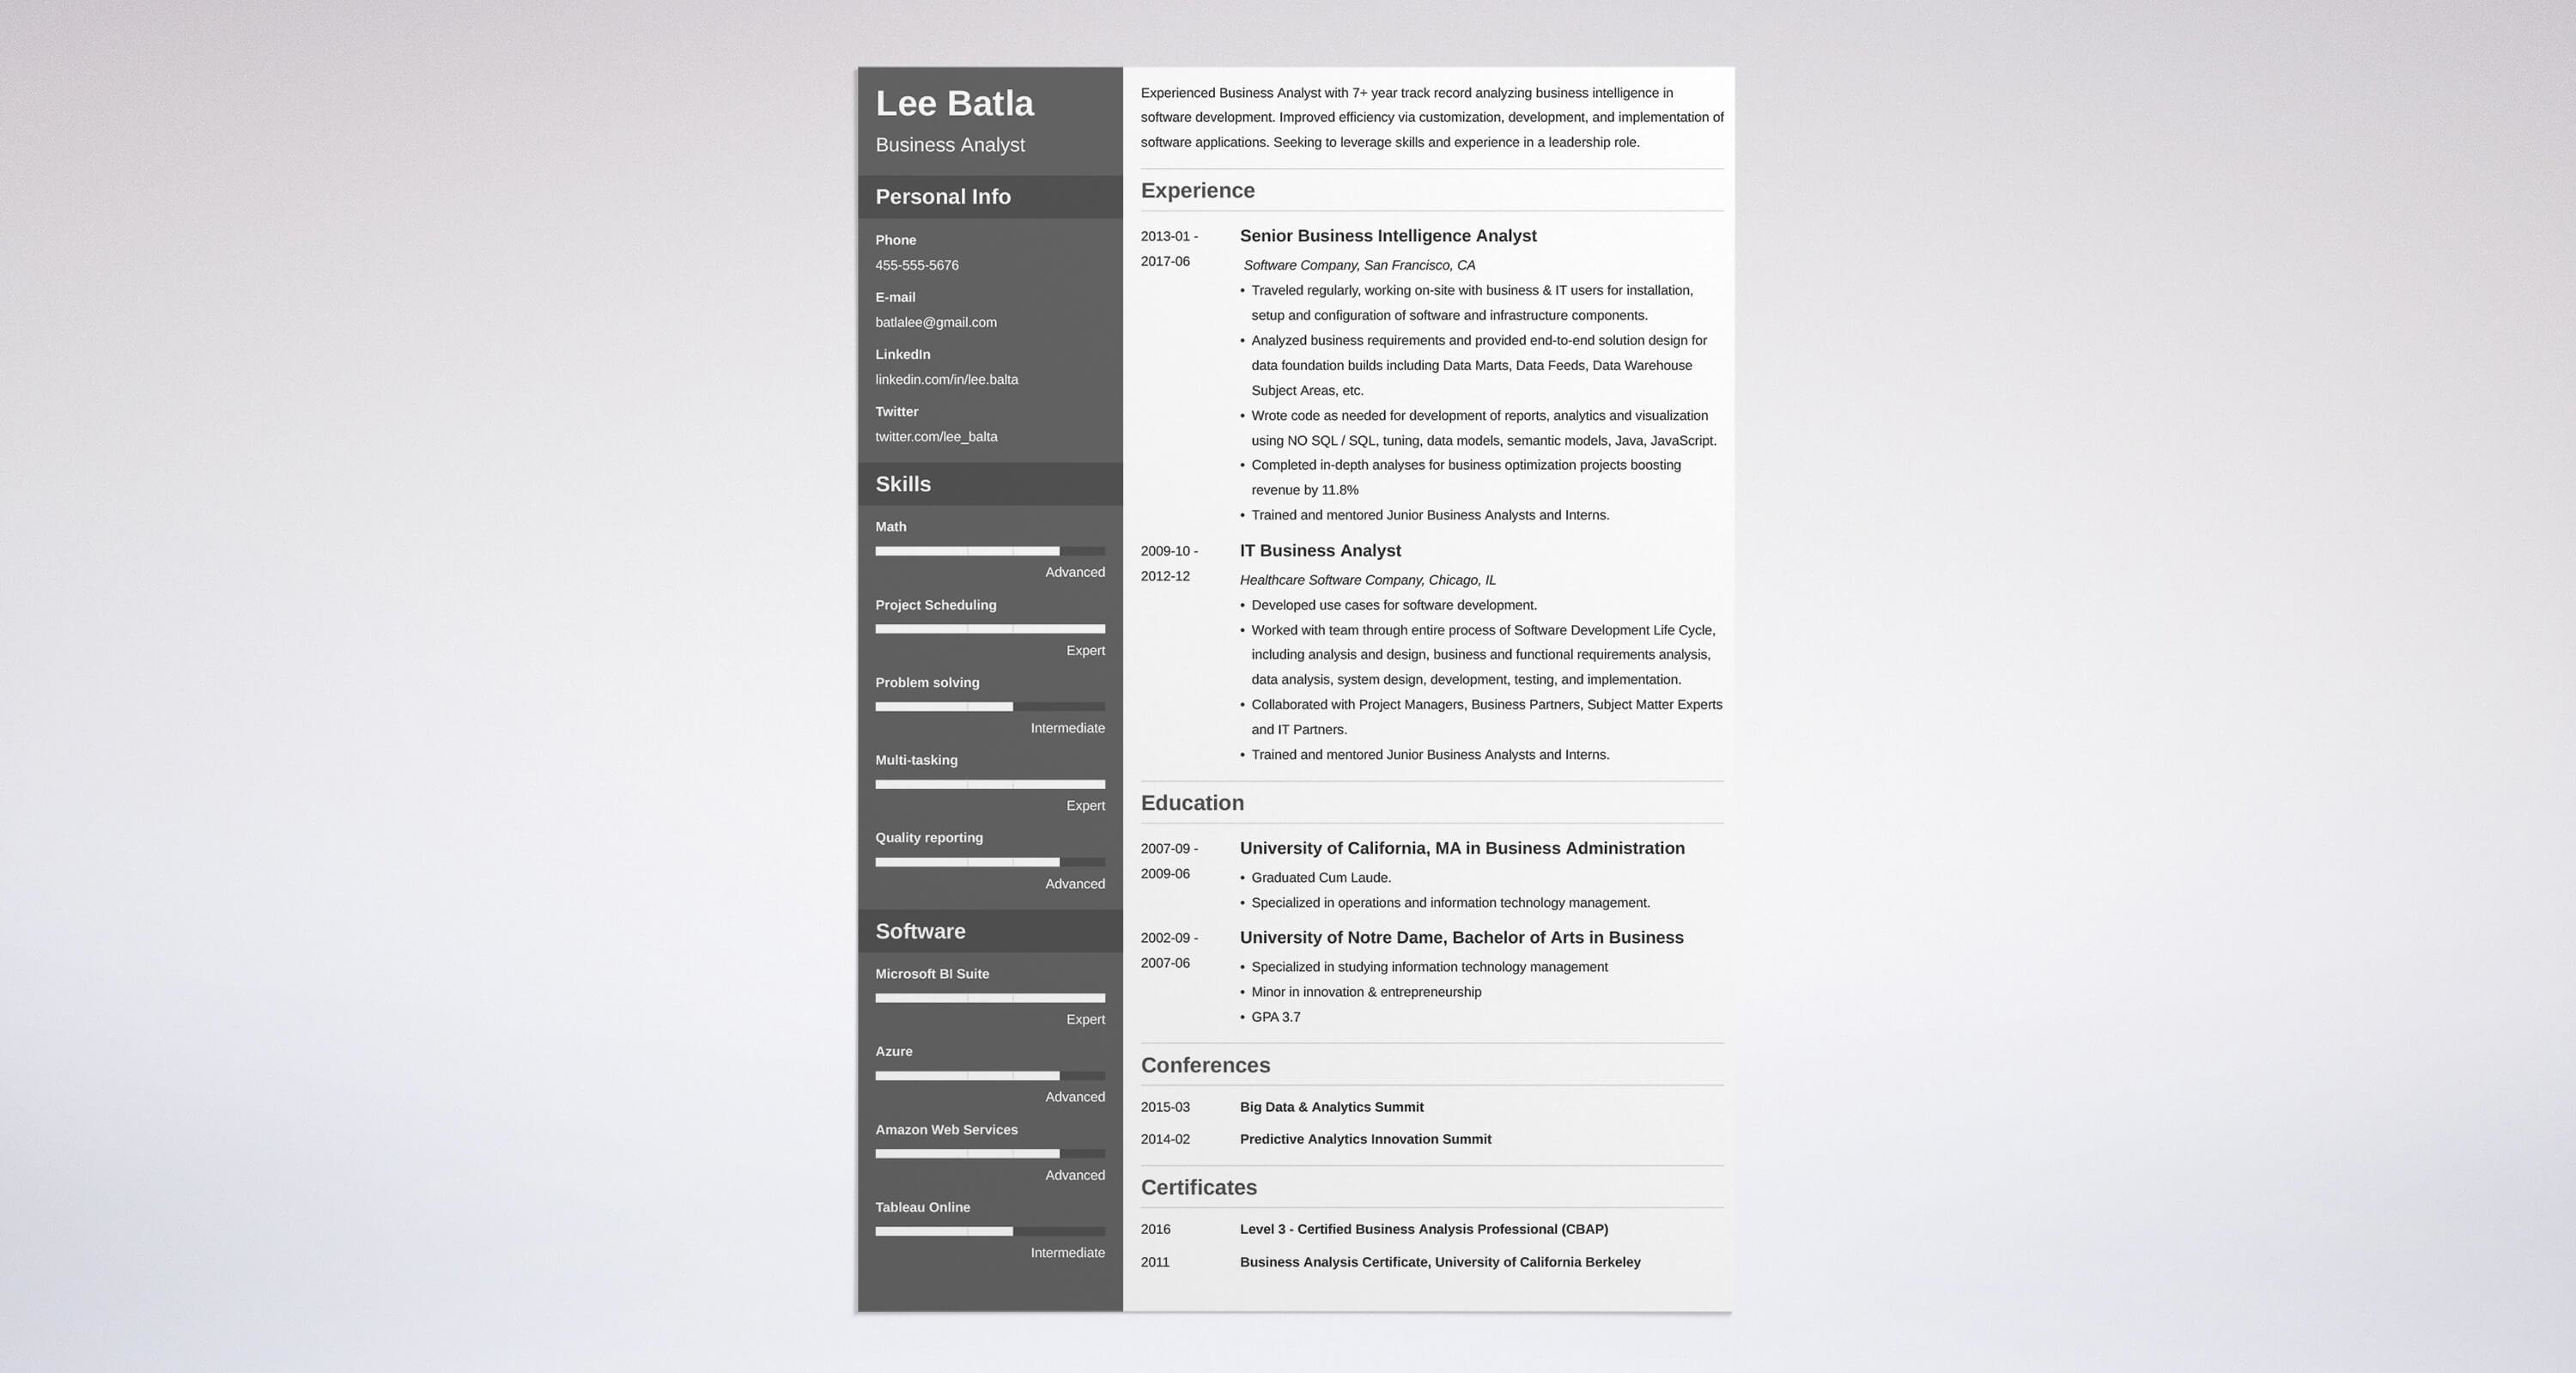 Awesome Business Analyst Resume: Sample U0026 Complete Guide [+20 Examples]